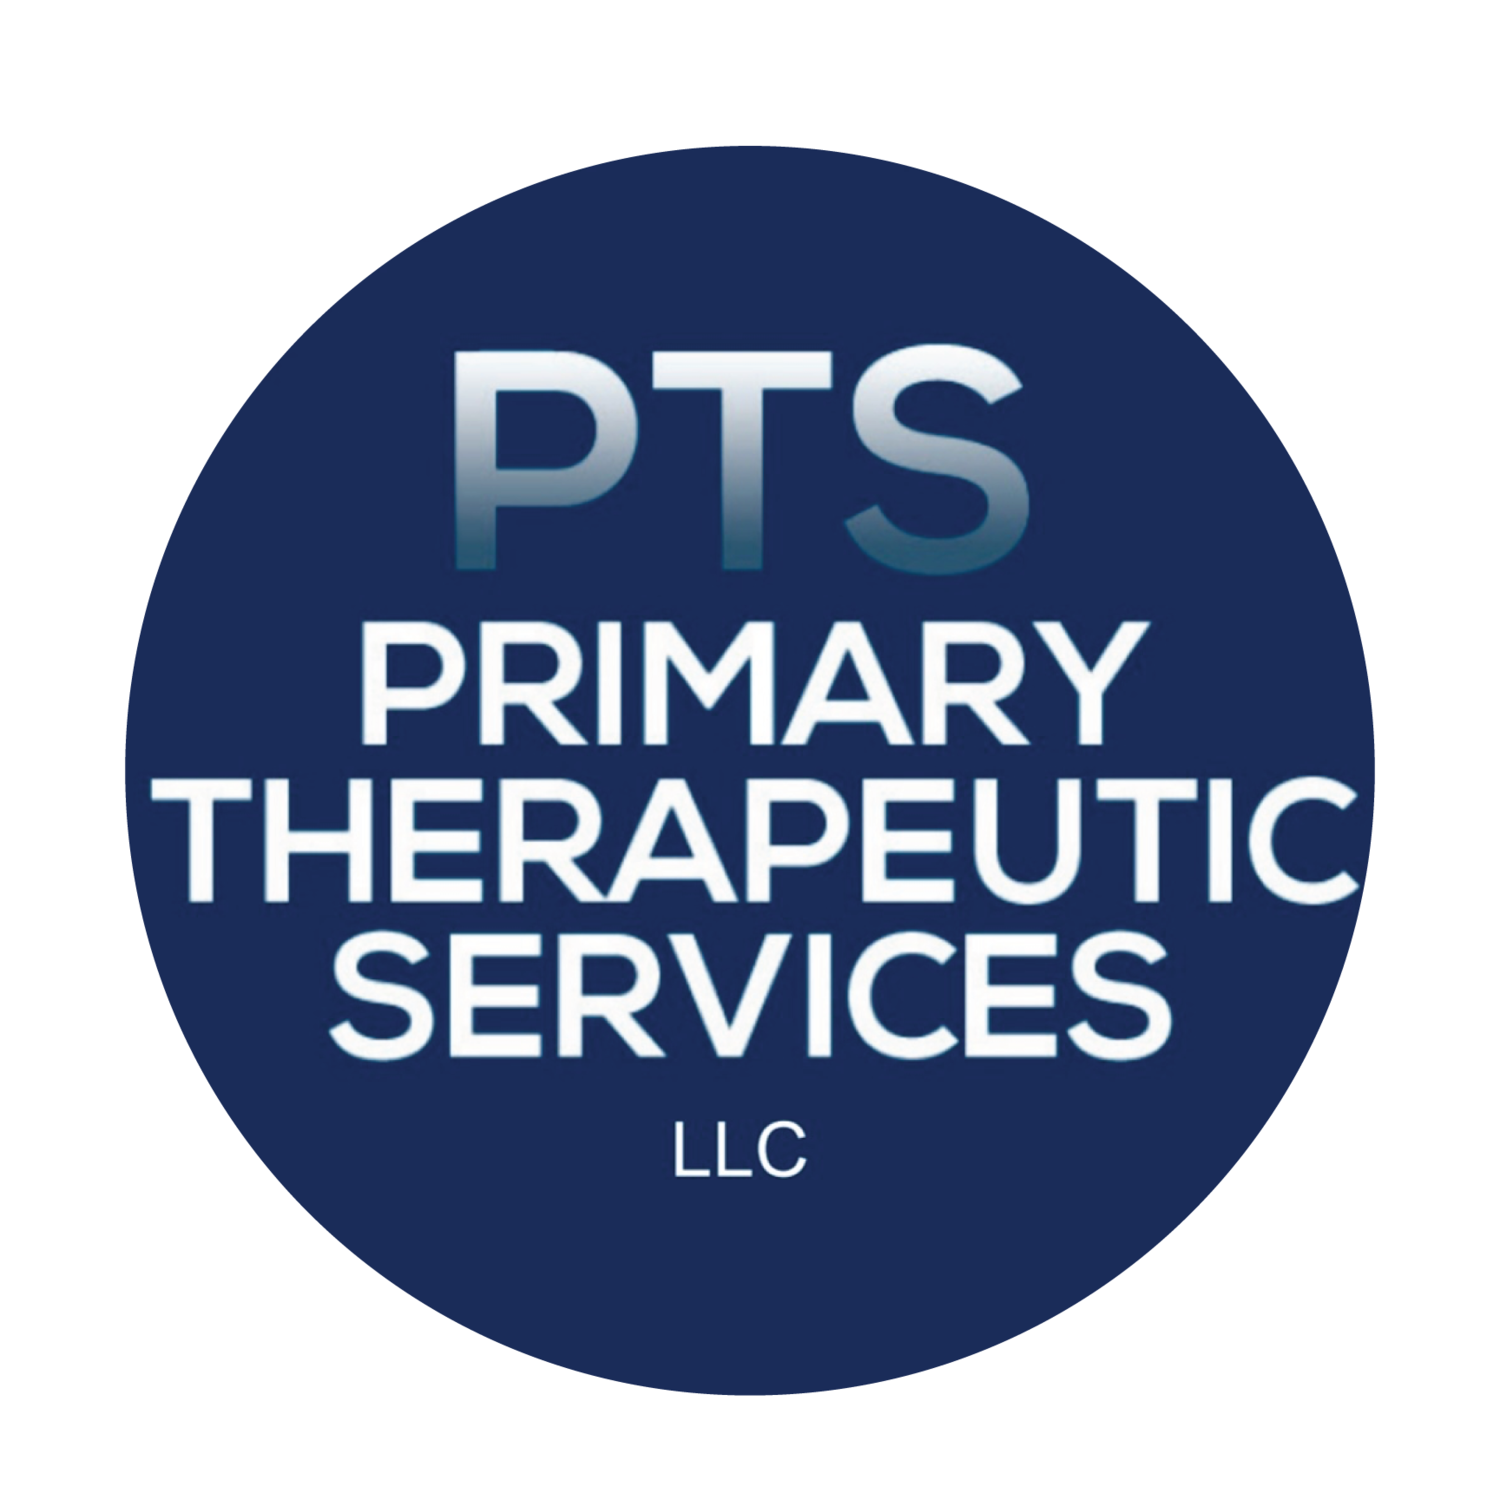 Primary Therapeutic Services, LLC